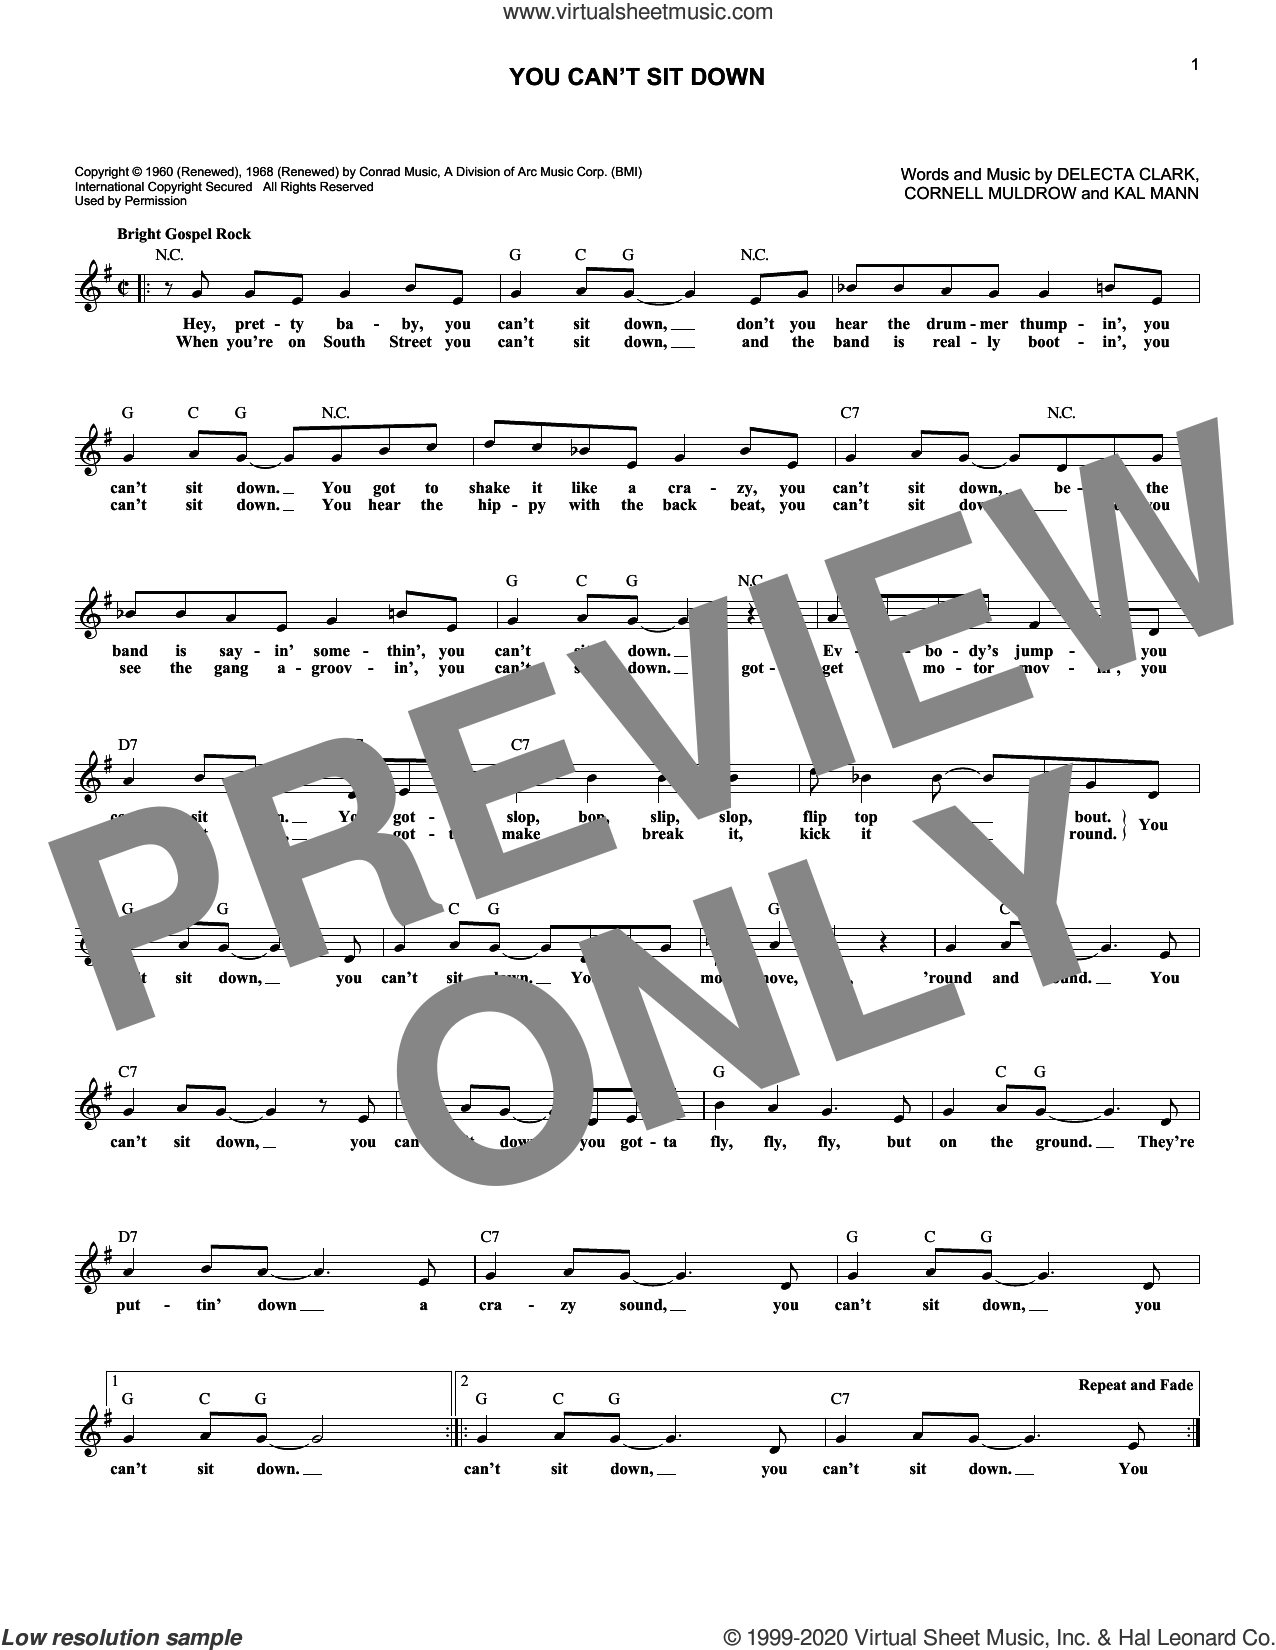 You Can't Sit Down sheet music for voice and other instruments (fake book) by The Dovells, Cornell Muldrow, Delecta Clark and Kal Mann, intermediate skill level